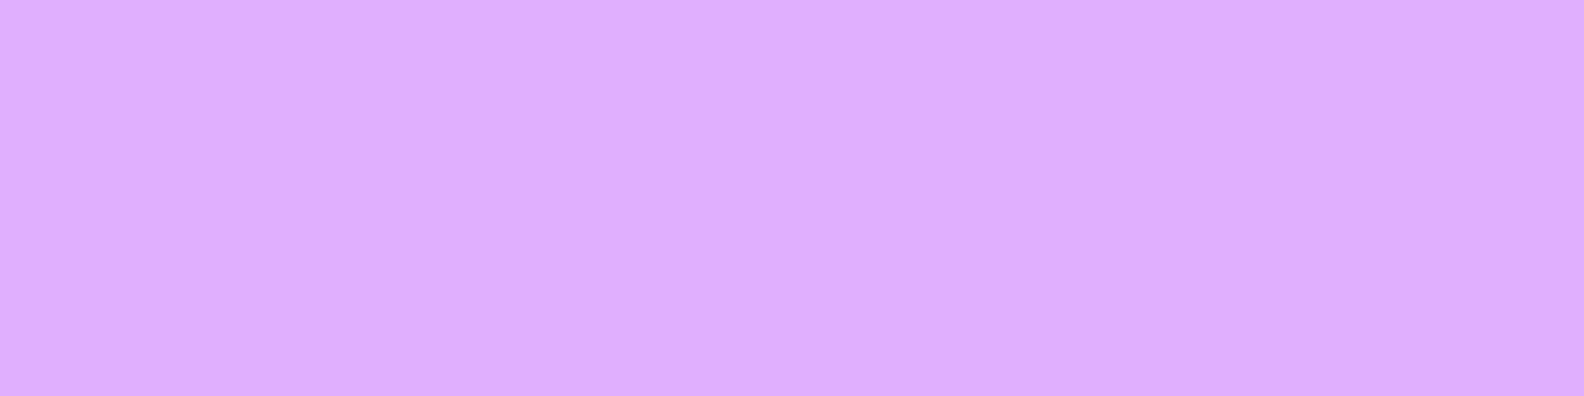 1584x396 Mauve Solid Color Background